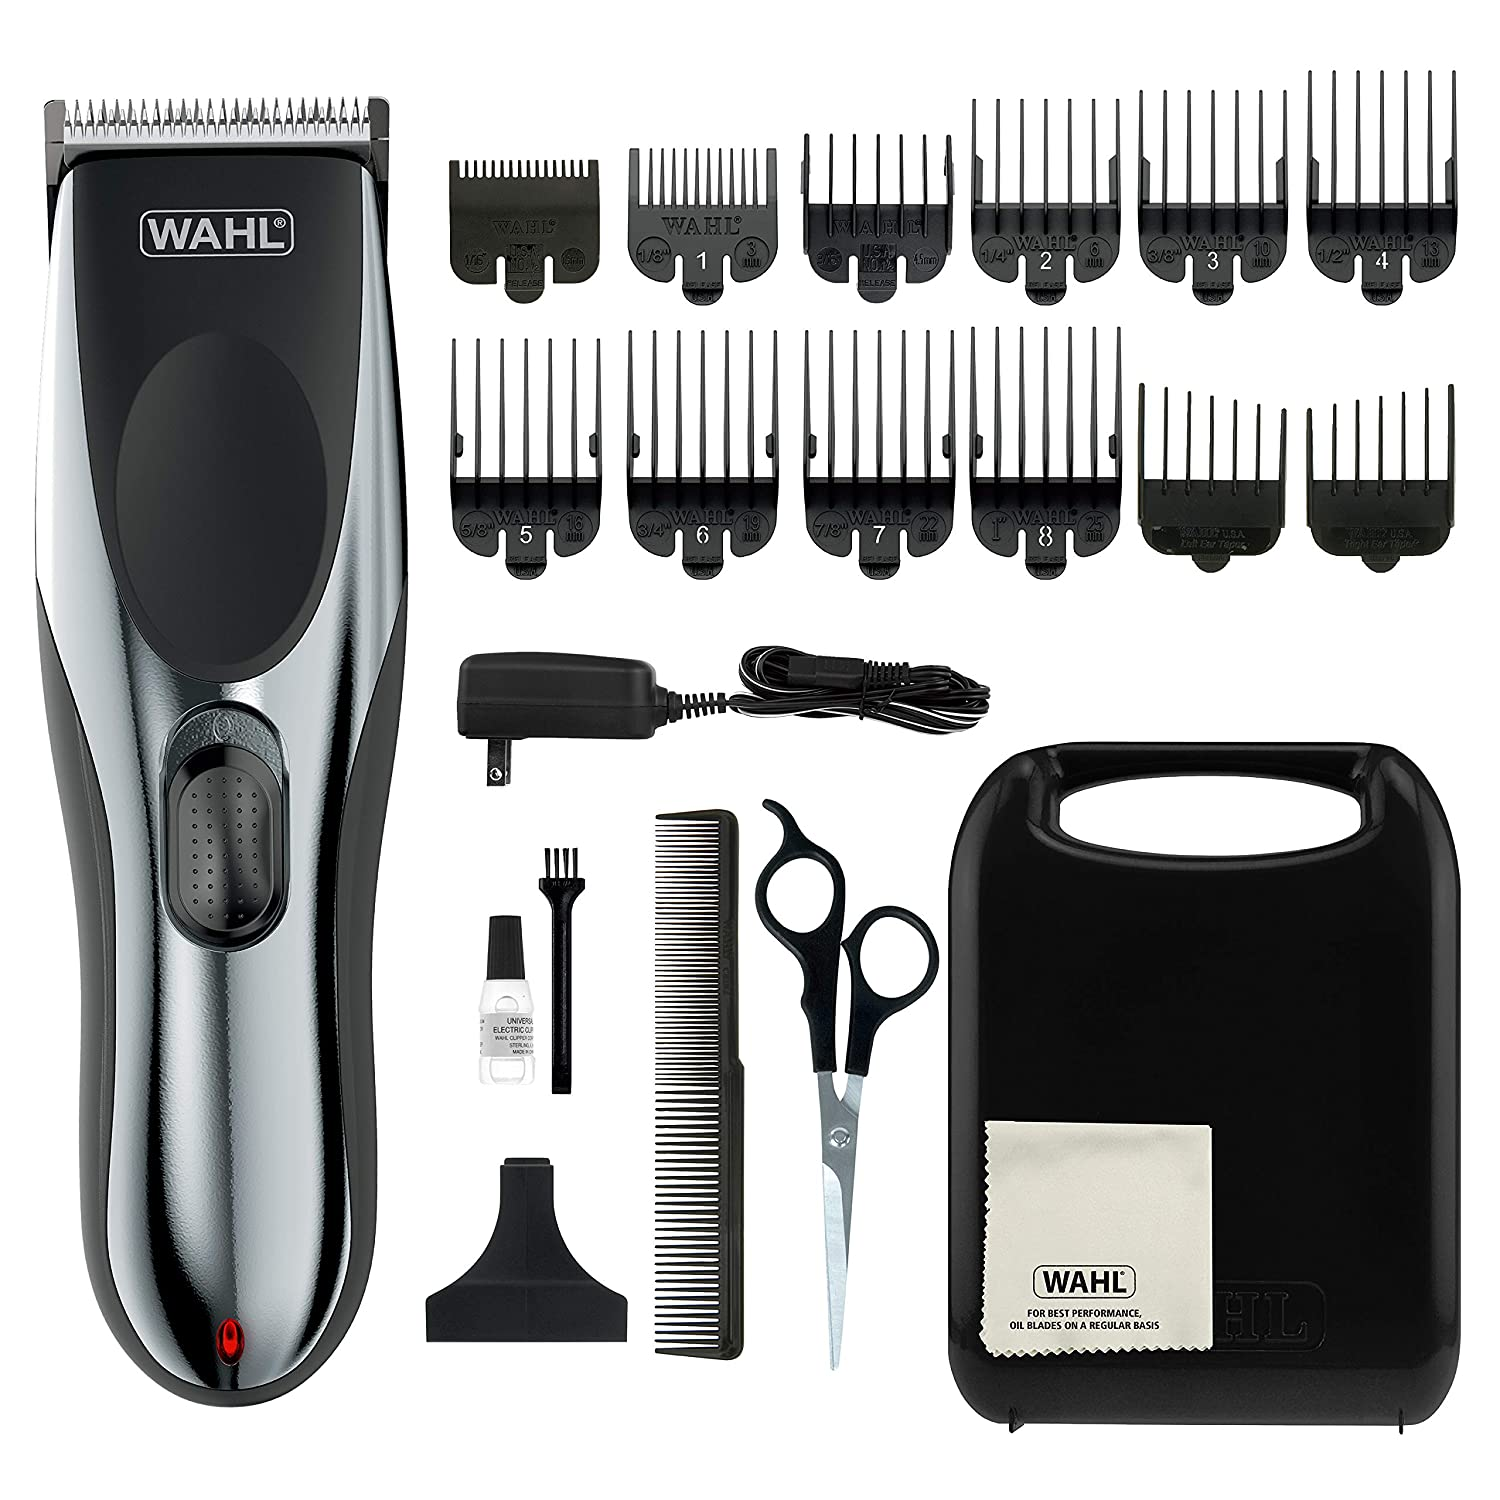 Wahl Clipper Rechargeable Cord/Cordless Haircutting & Trimming Kit for Heads, Beards, & All Body Grooming - Model 79434 : Beauty & Personal Care